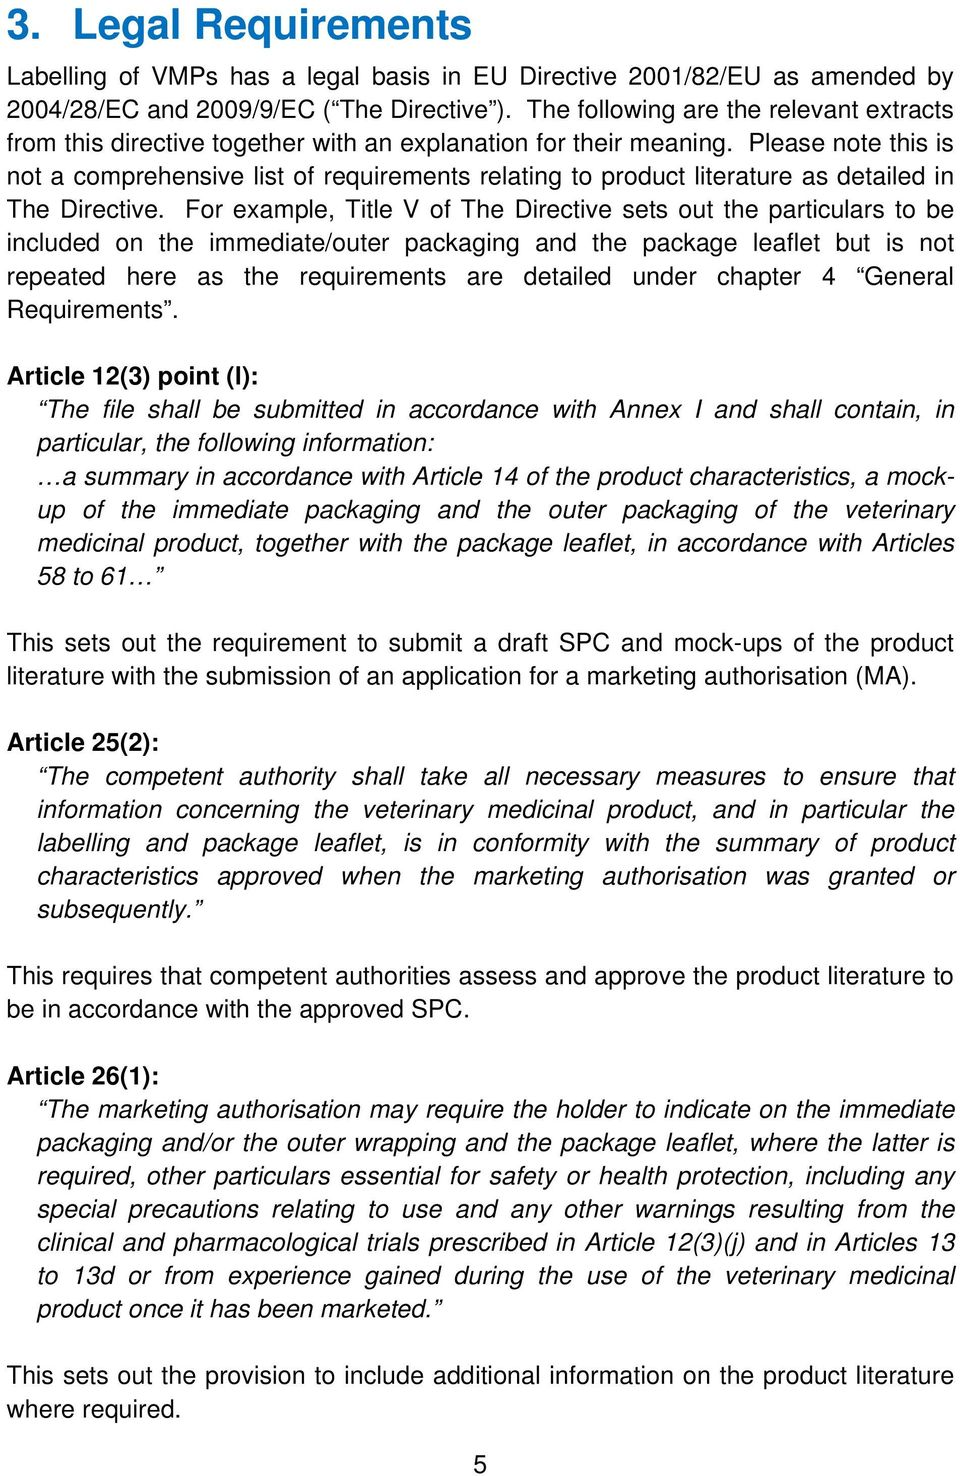 Please note this is not a comprehensive list of requirements relating to product literature as detailed in The Directive.